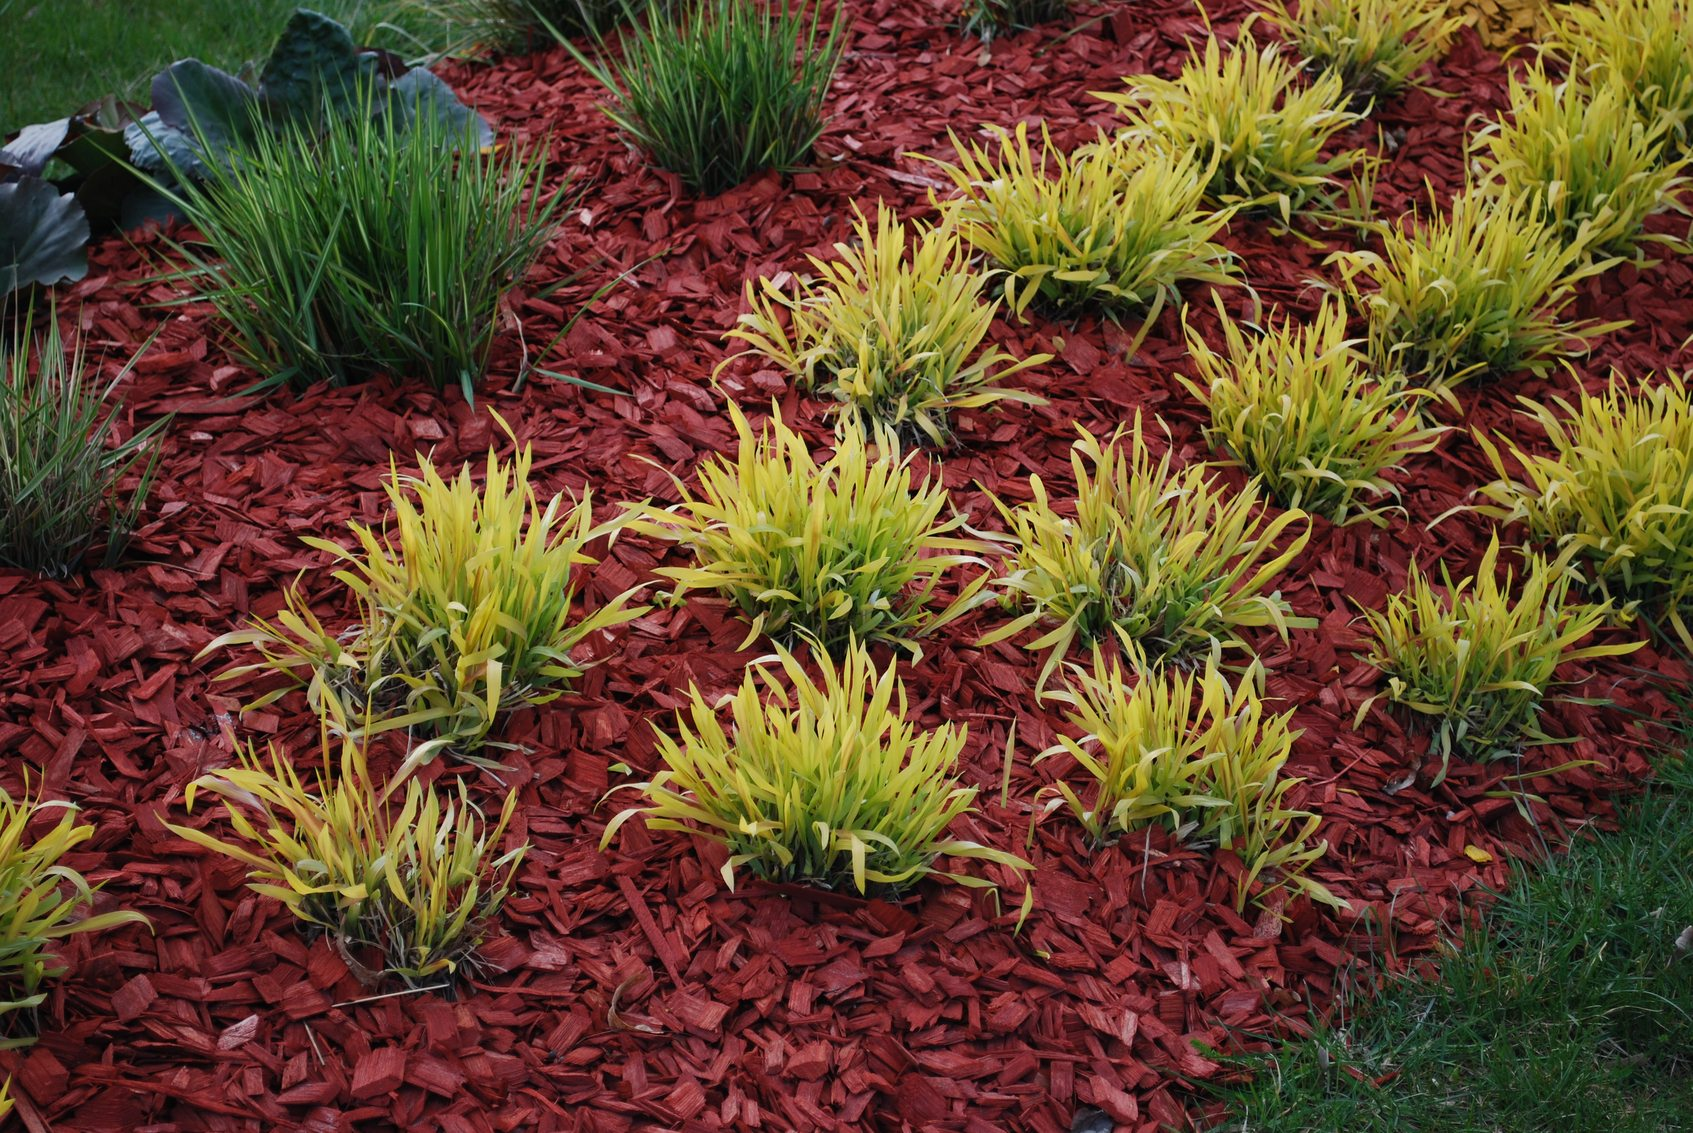 Dyed Mulch Vs. Regular Mulch: Using Colored Mulch In Gardens